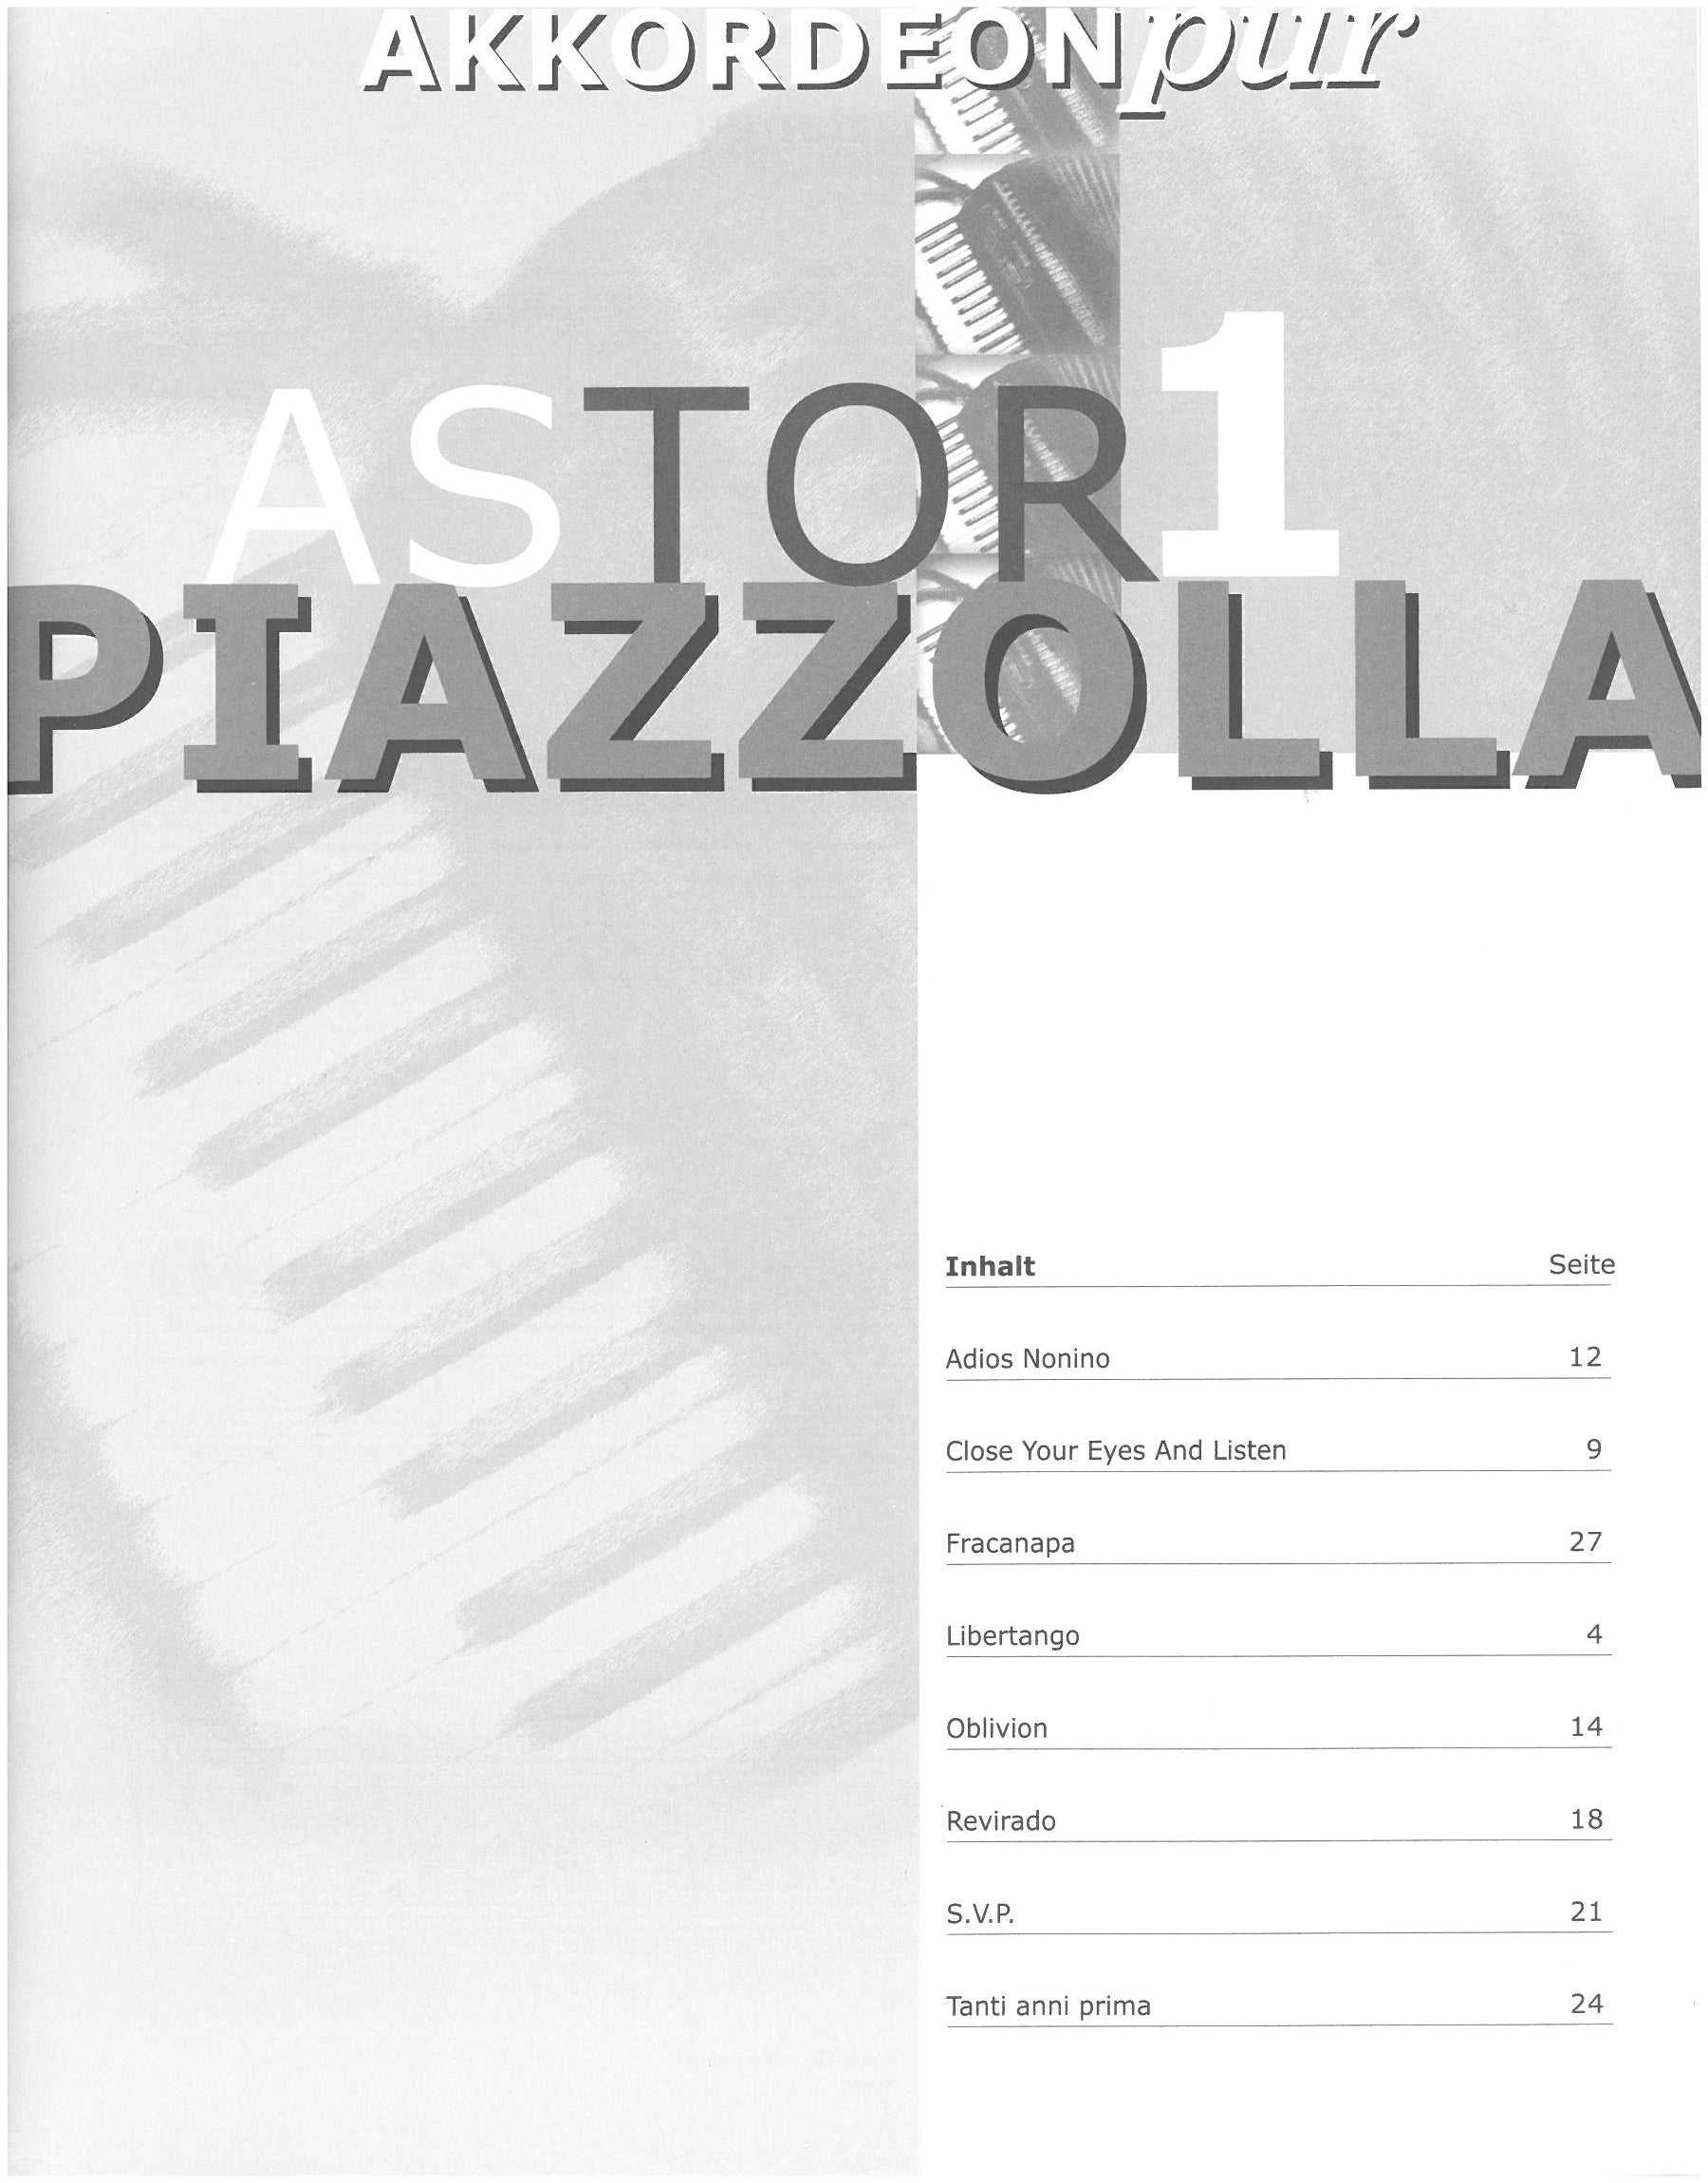 Astor Piazzolla Accordion Song Titles